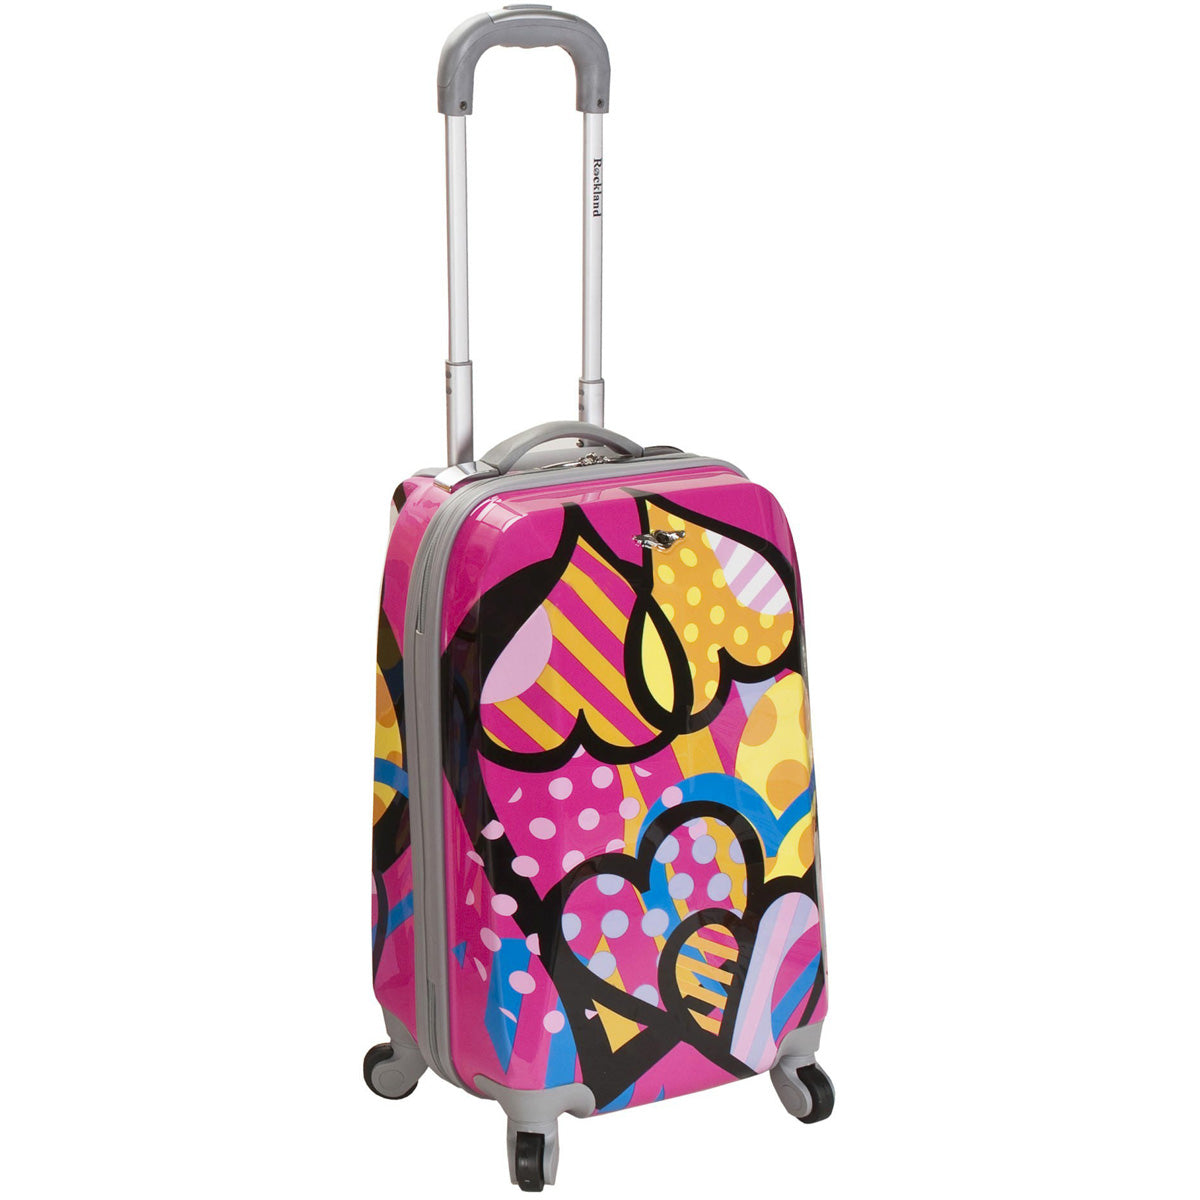 Rockland Luggage Vision 20in Polycarbonate Carry On Spinner